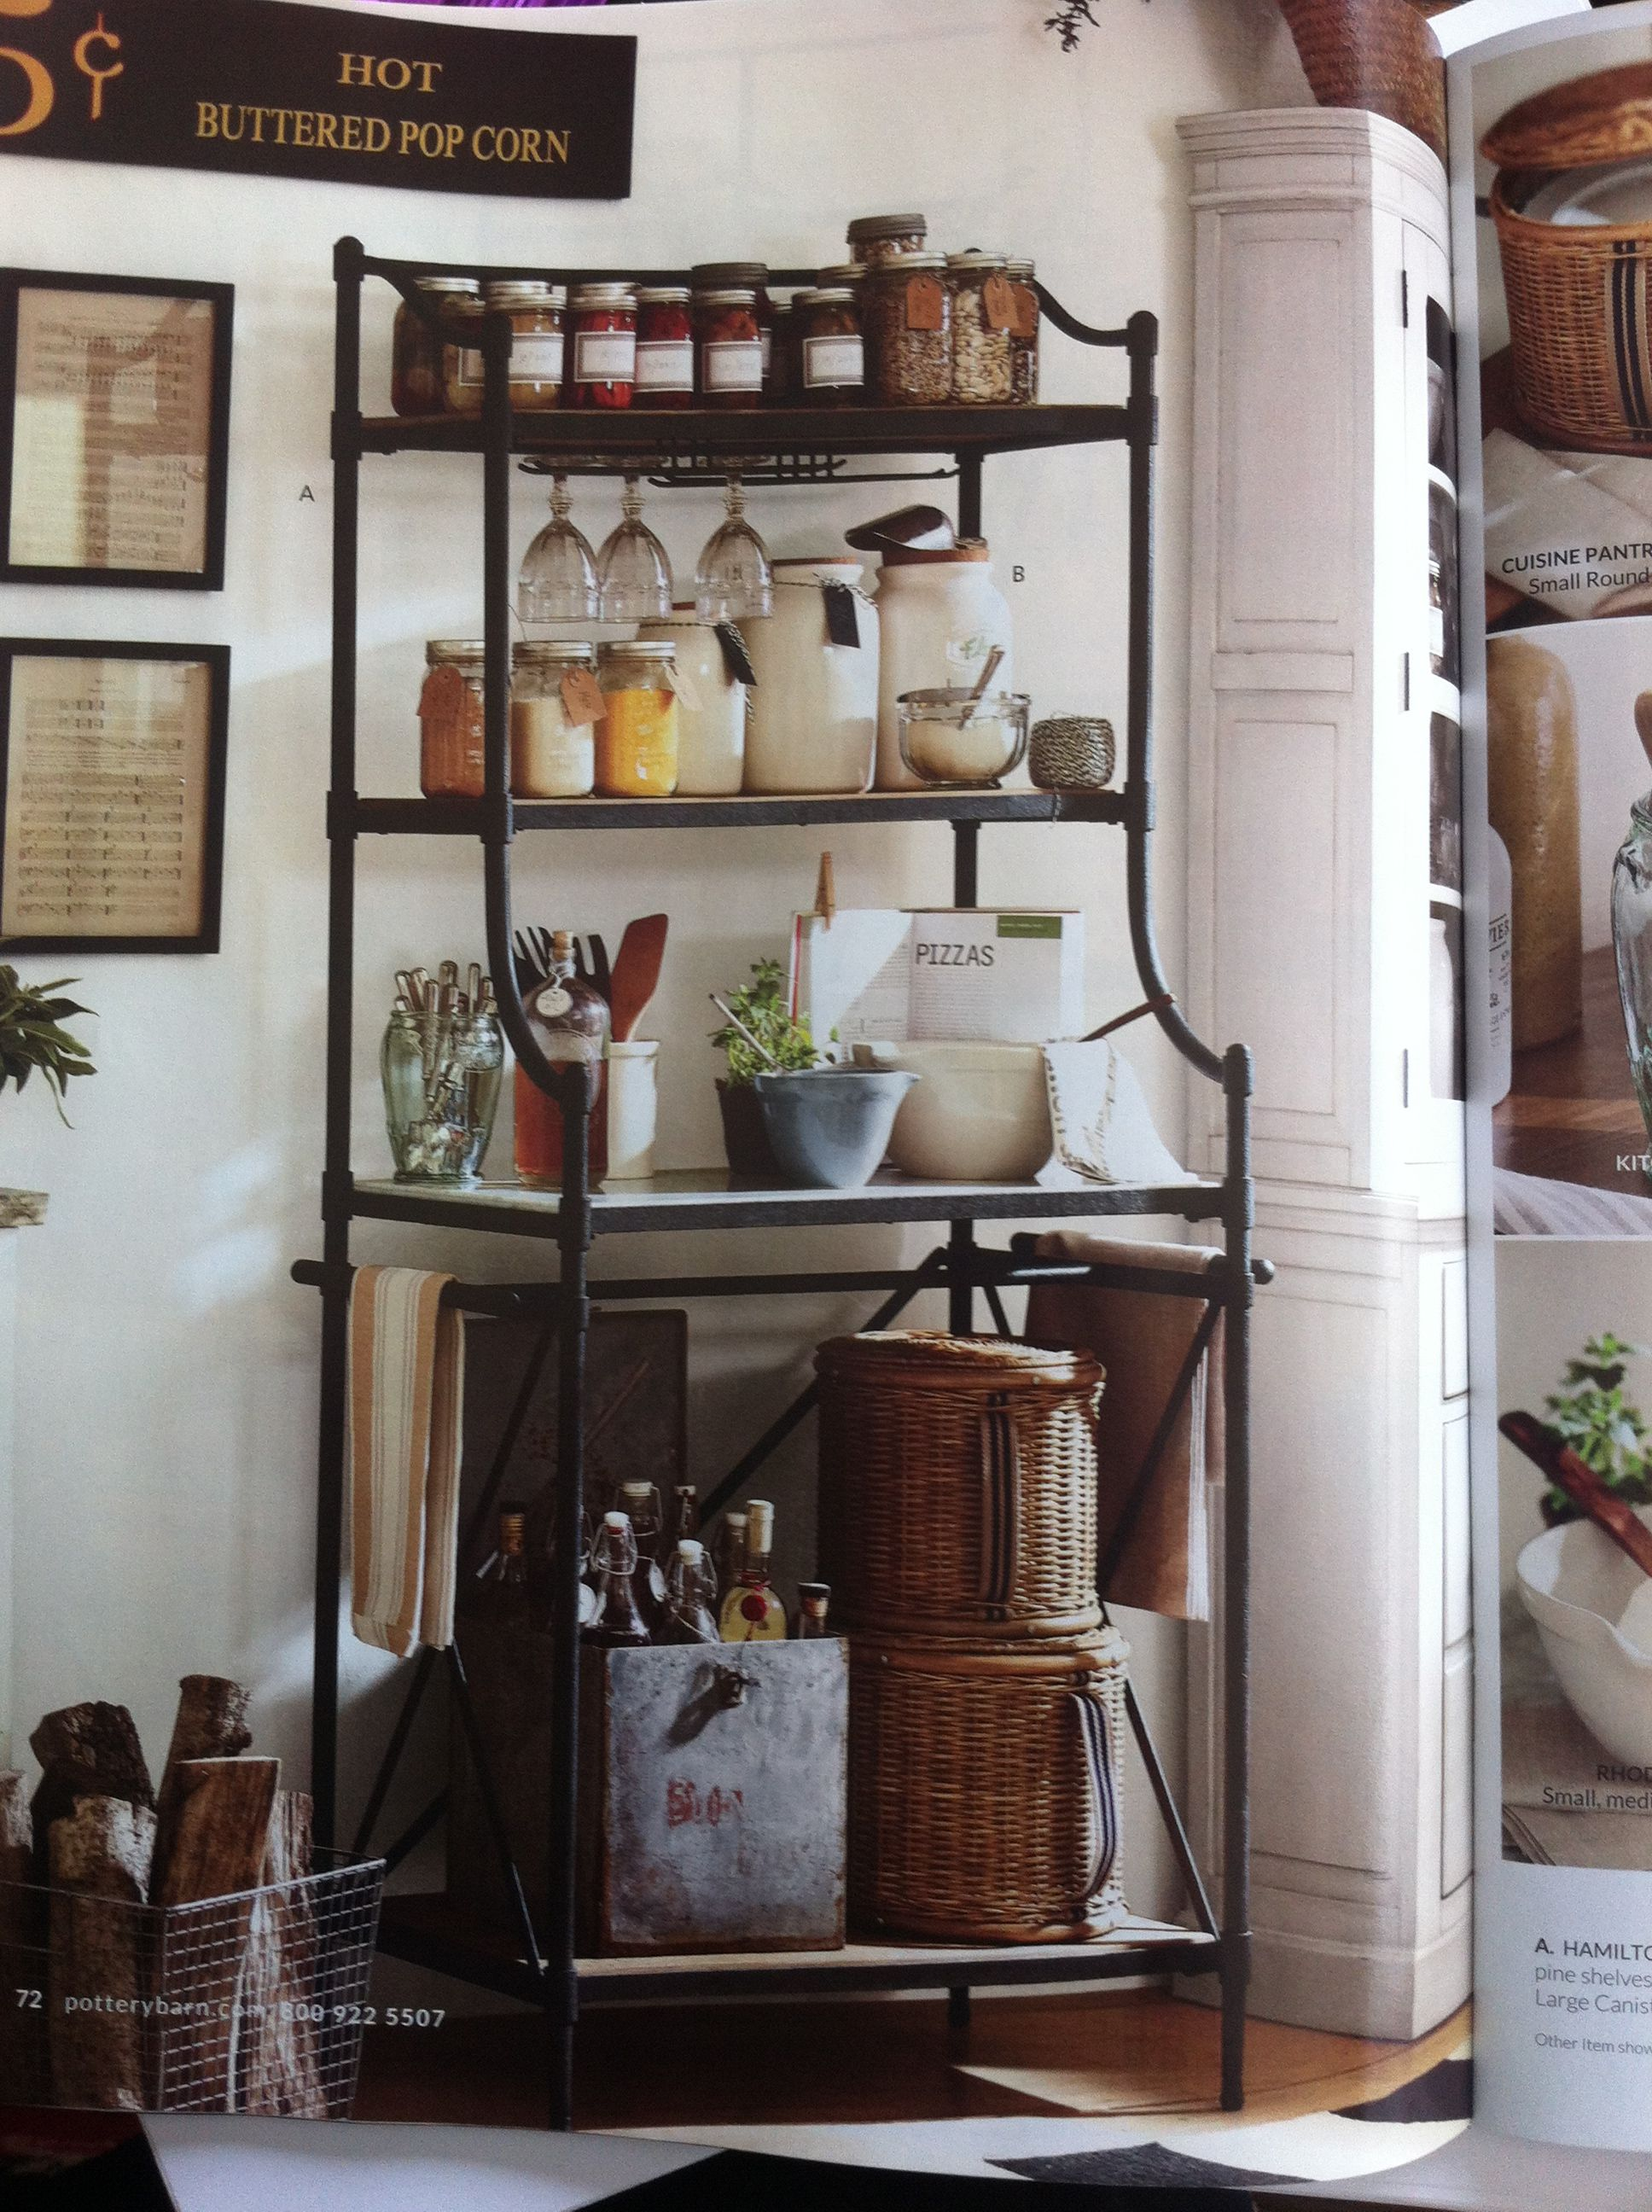 Pottery barn bakers rack | janet's fabulous cottage kitchen ideas ...